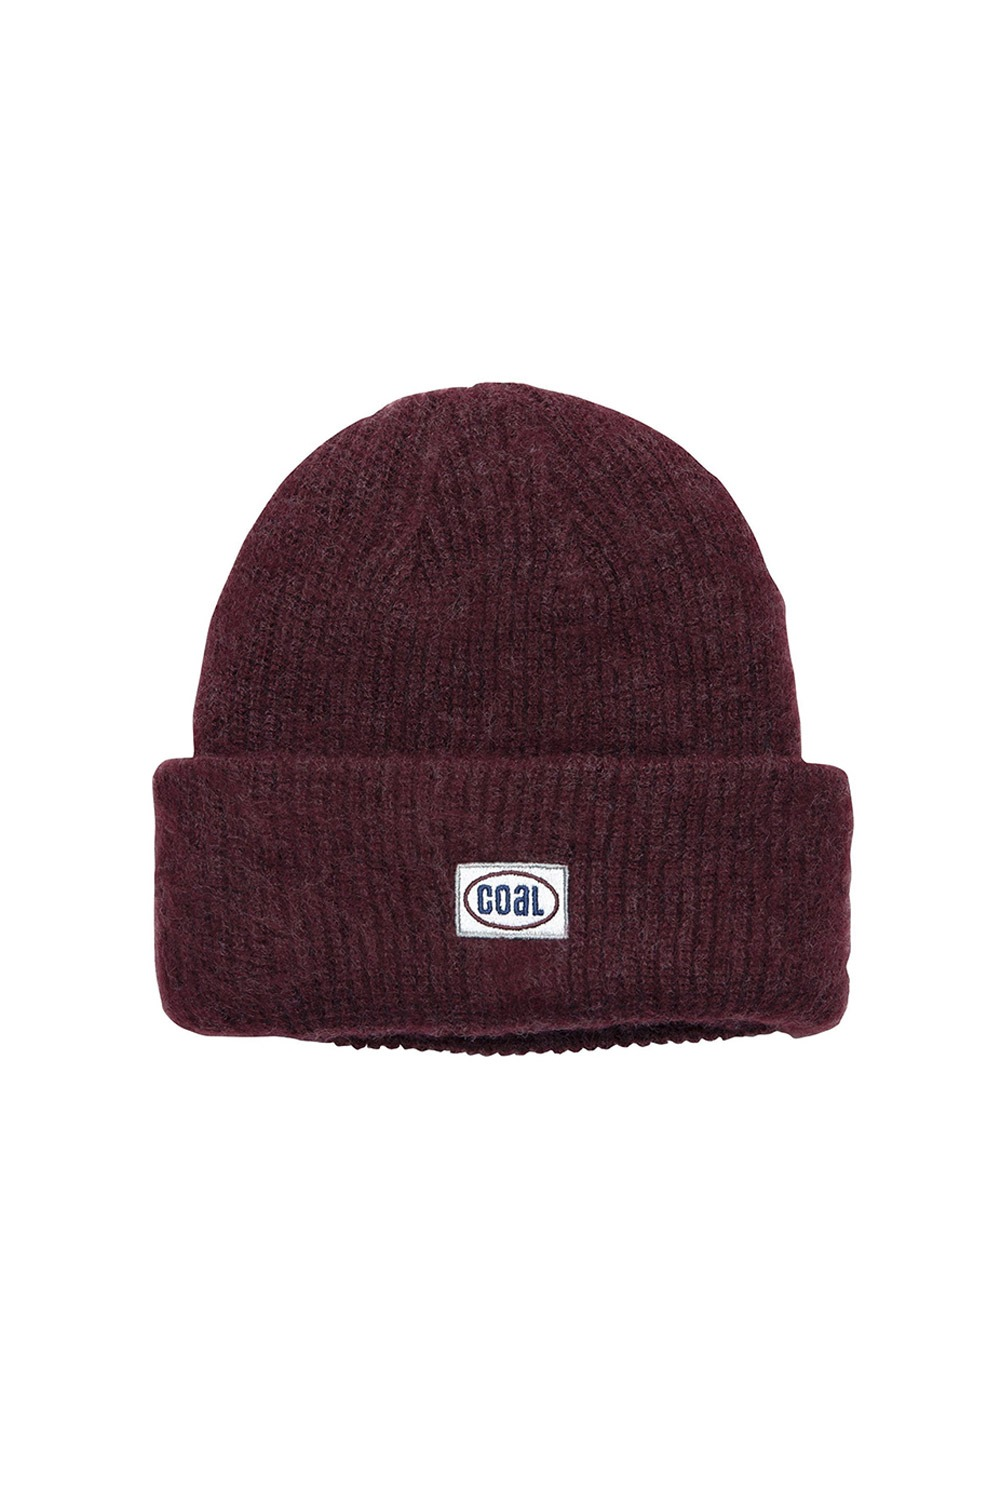 콜 모자 이얼 비니_남녀공용_1920 COAL_THE EARL BEANIE_HEATHER BURGUNDY_ICA911BG[28]_DICA911BG